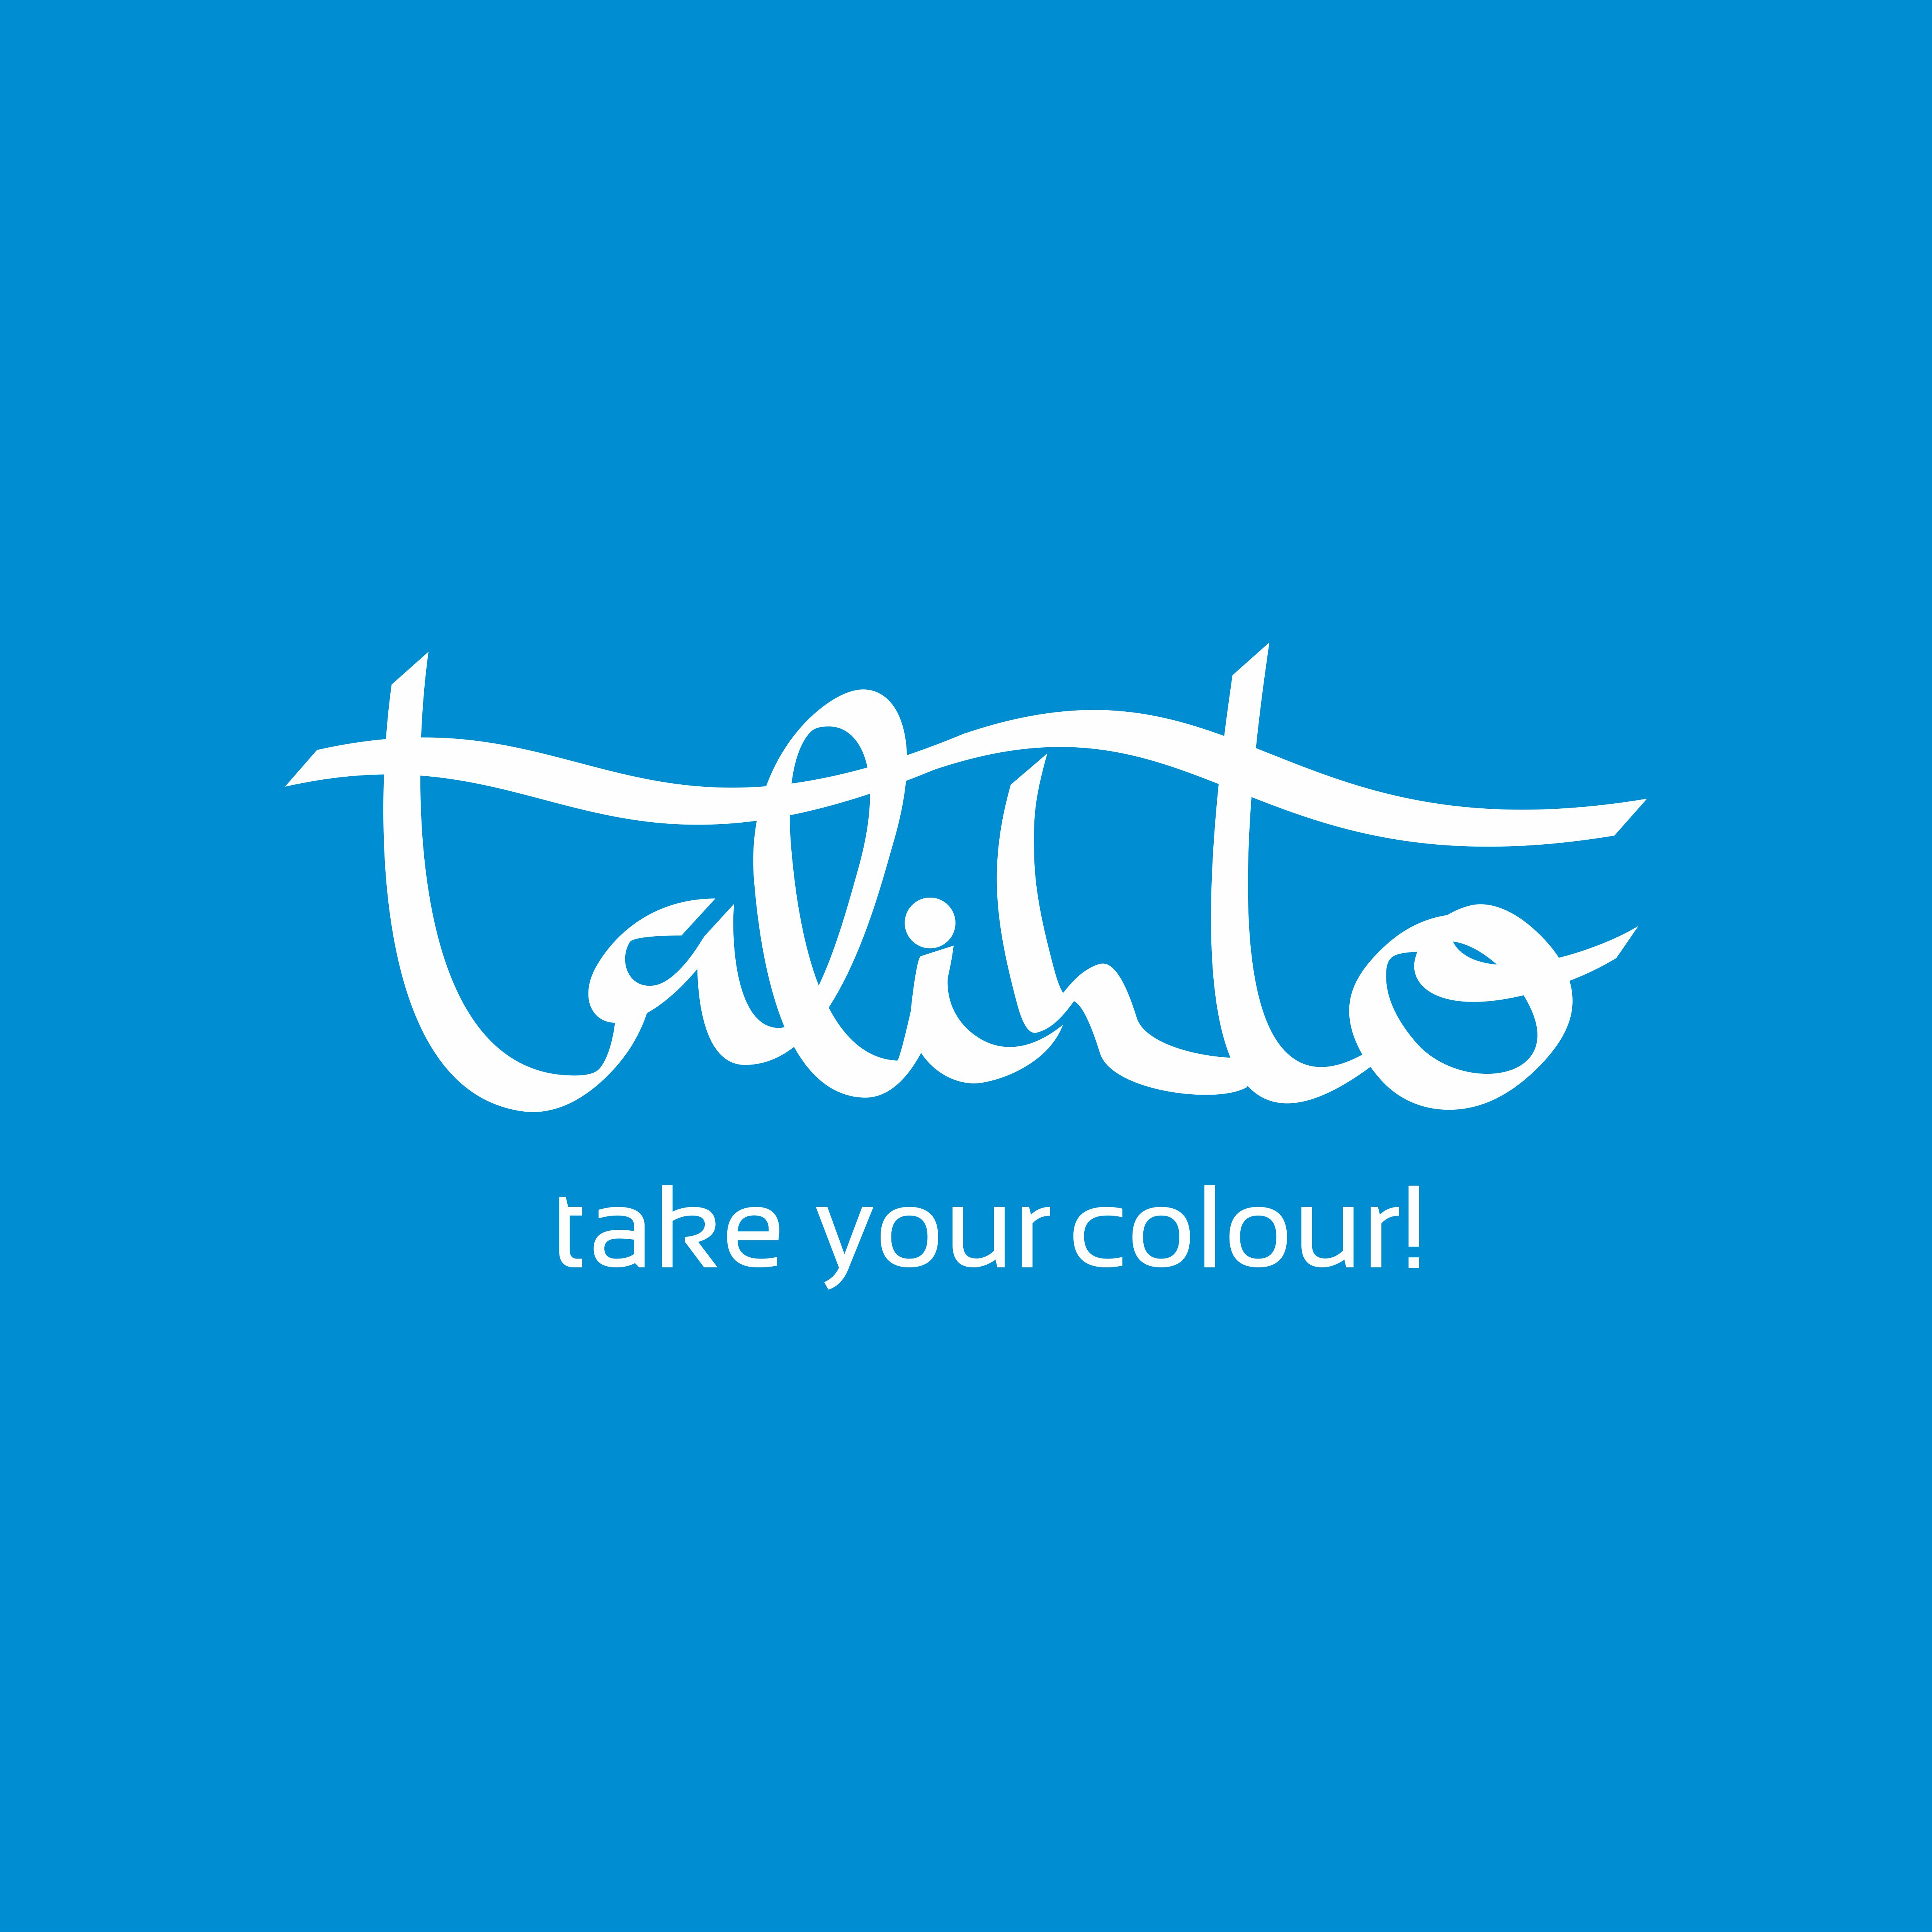 Talihto - take your colour !